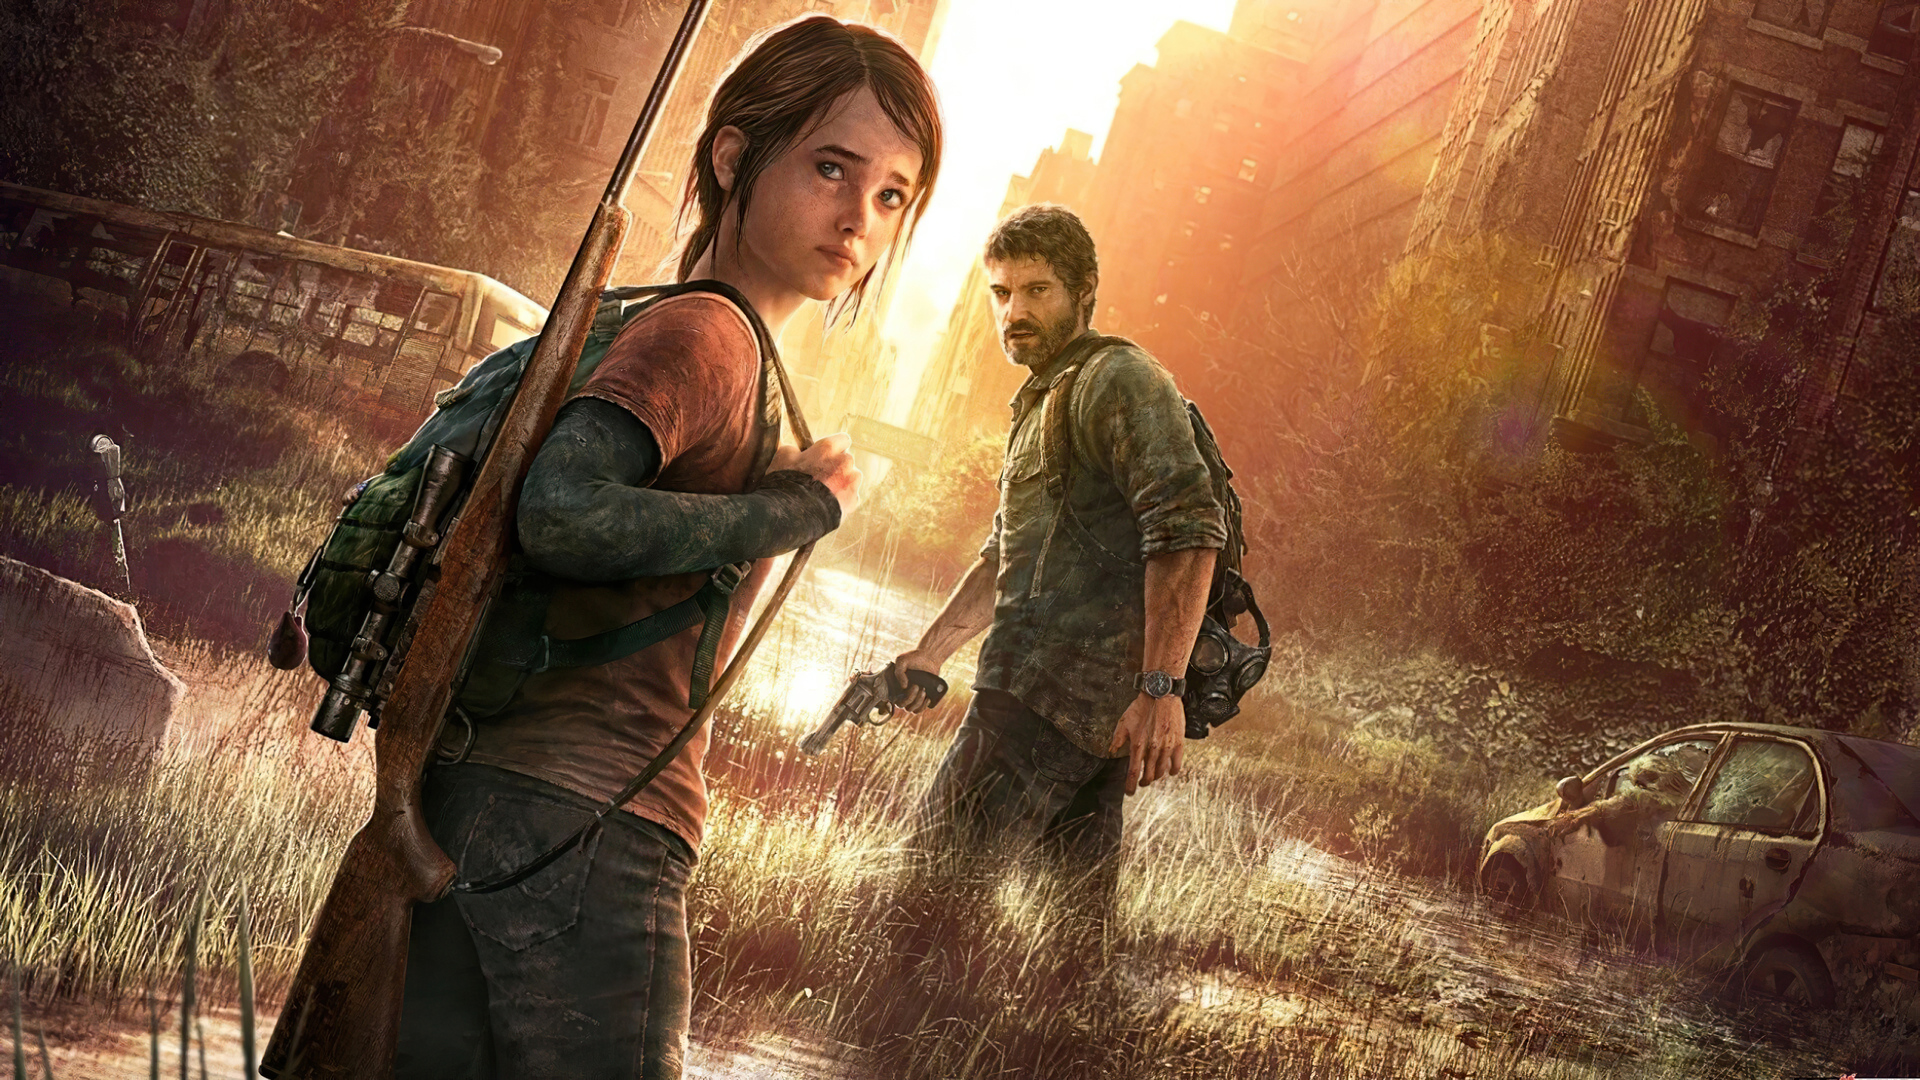 1920x1080 The Last Of Us Part II Game Laptop Full HD 1080P ...